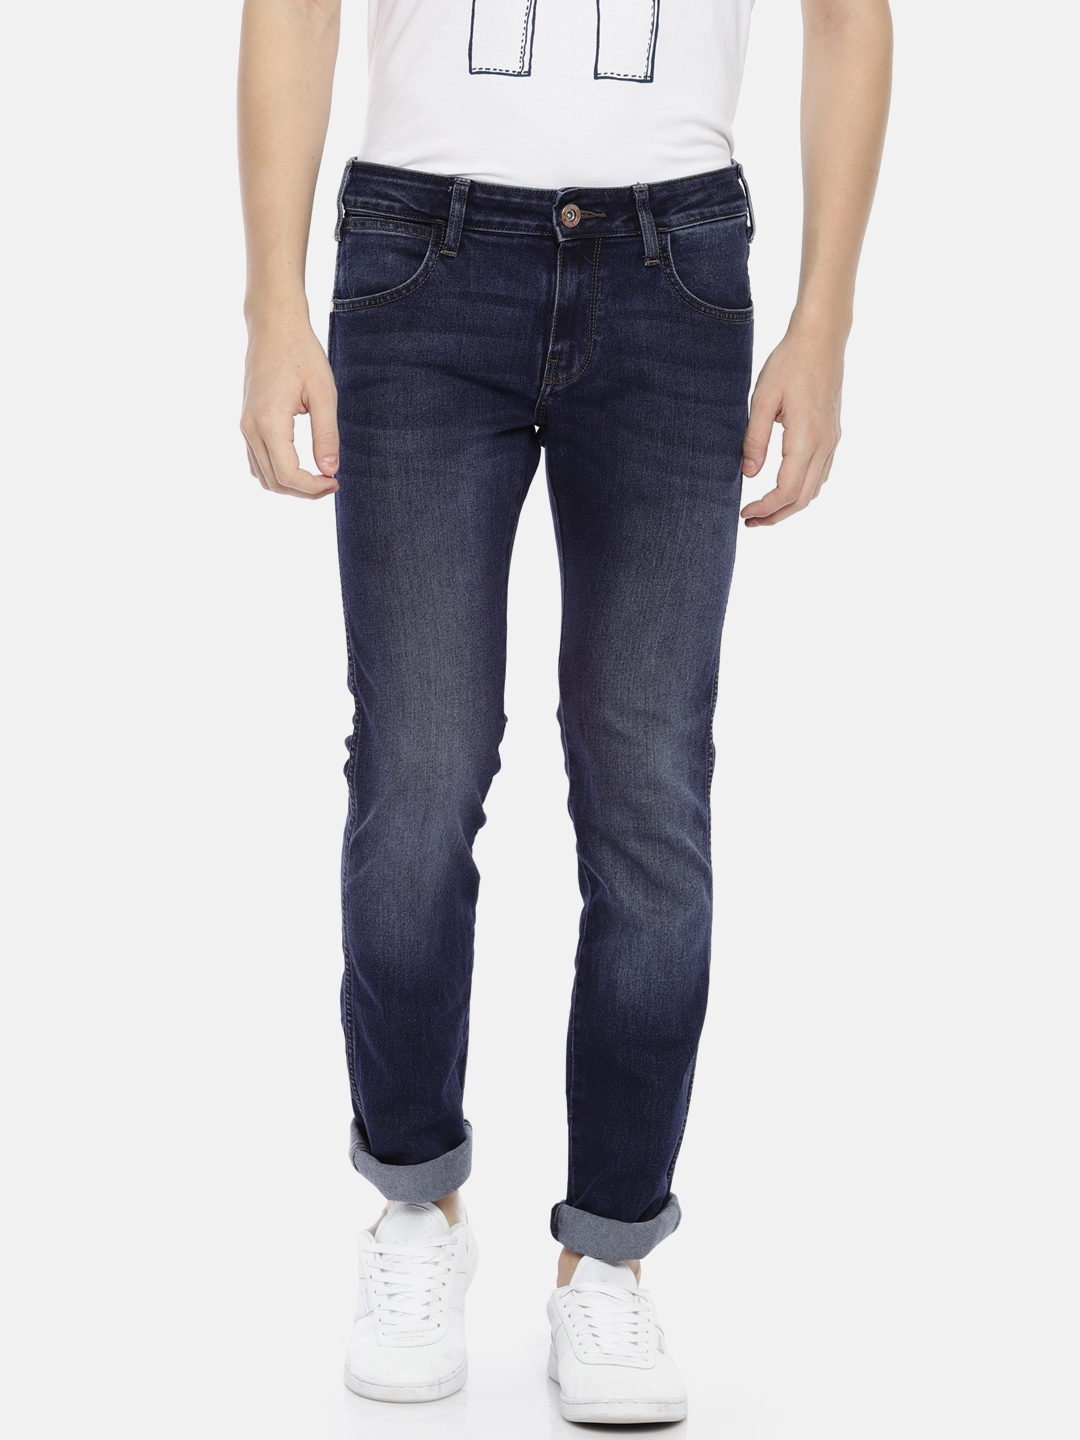 472d01b8259 Mens Clothing - Buy Clothing for Men Online in India